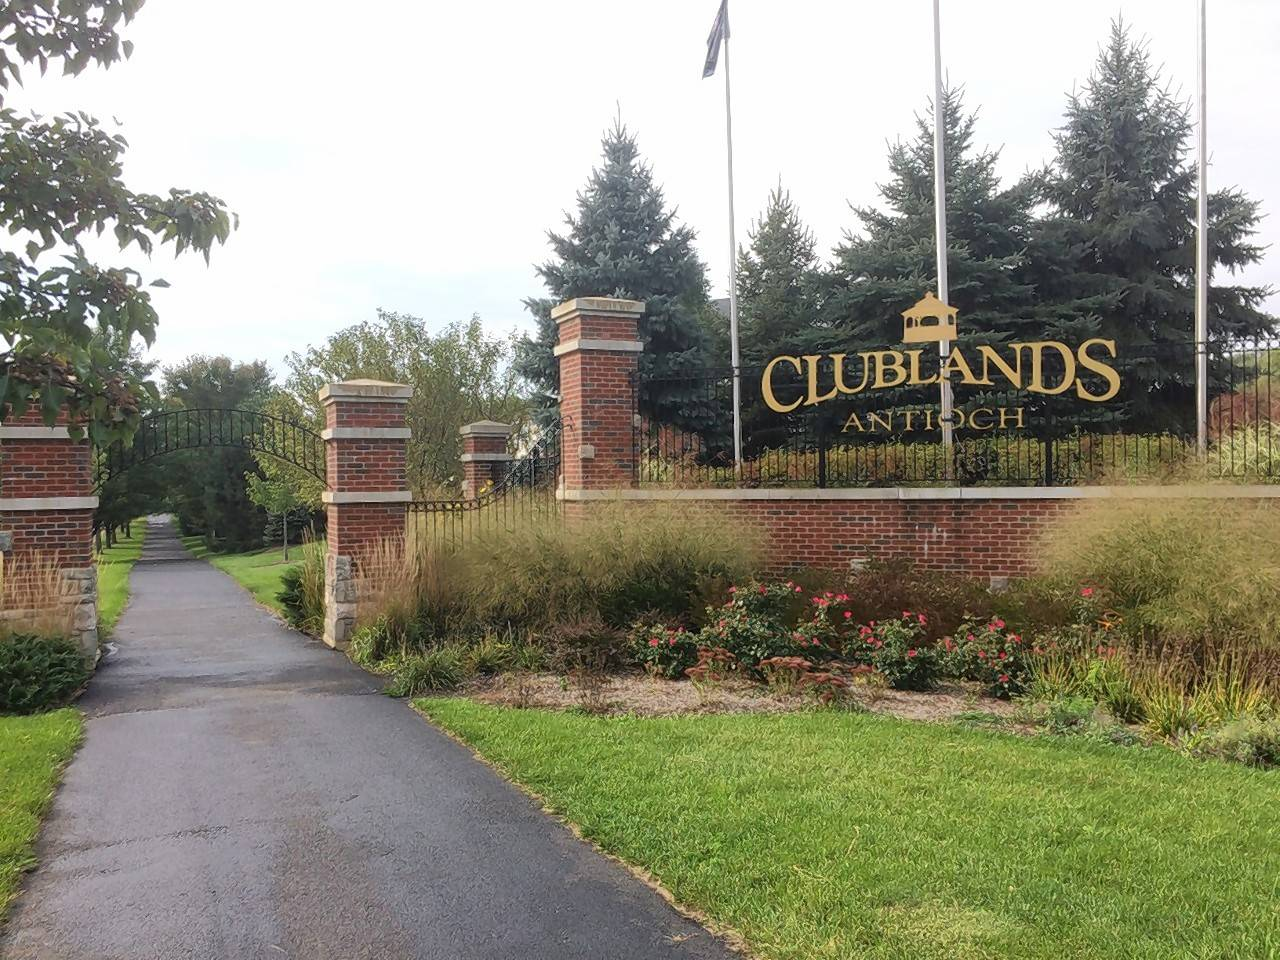 New homes planned for unfinished Clublands subdivision in Antioch